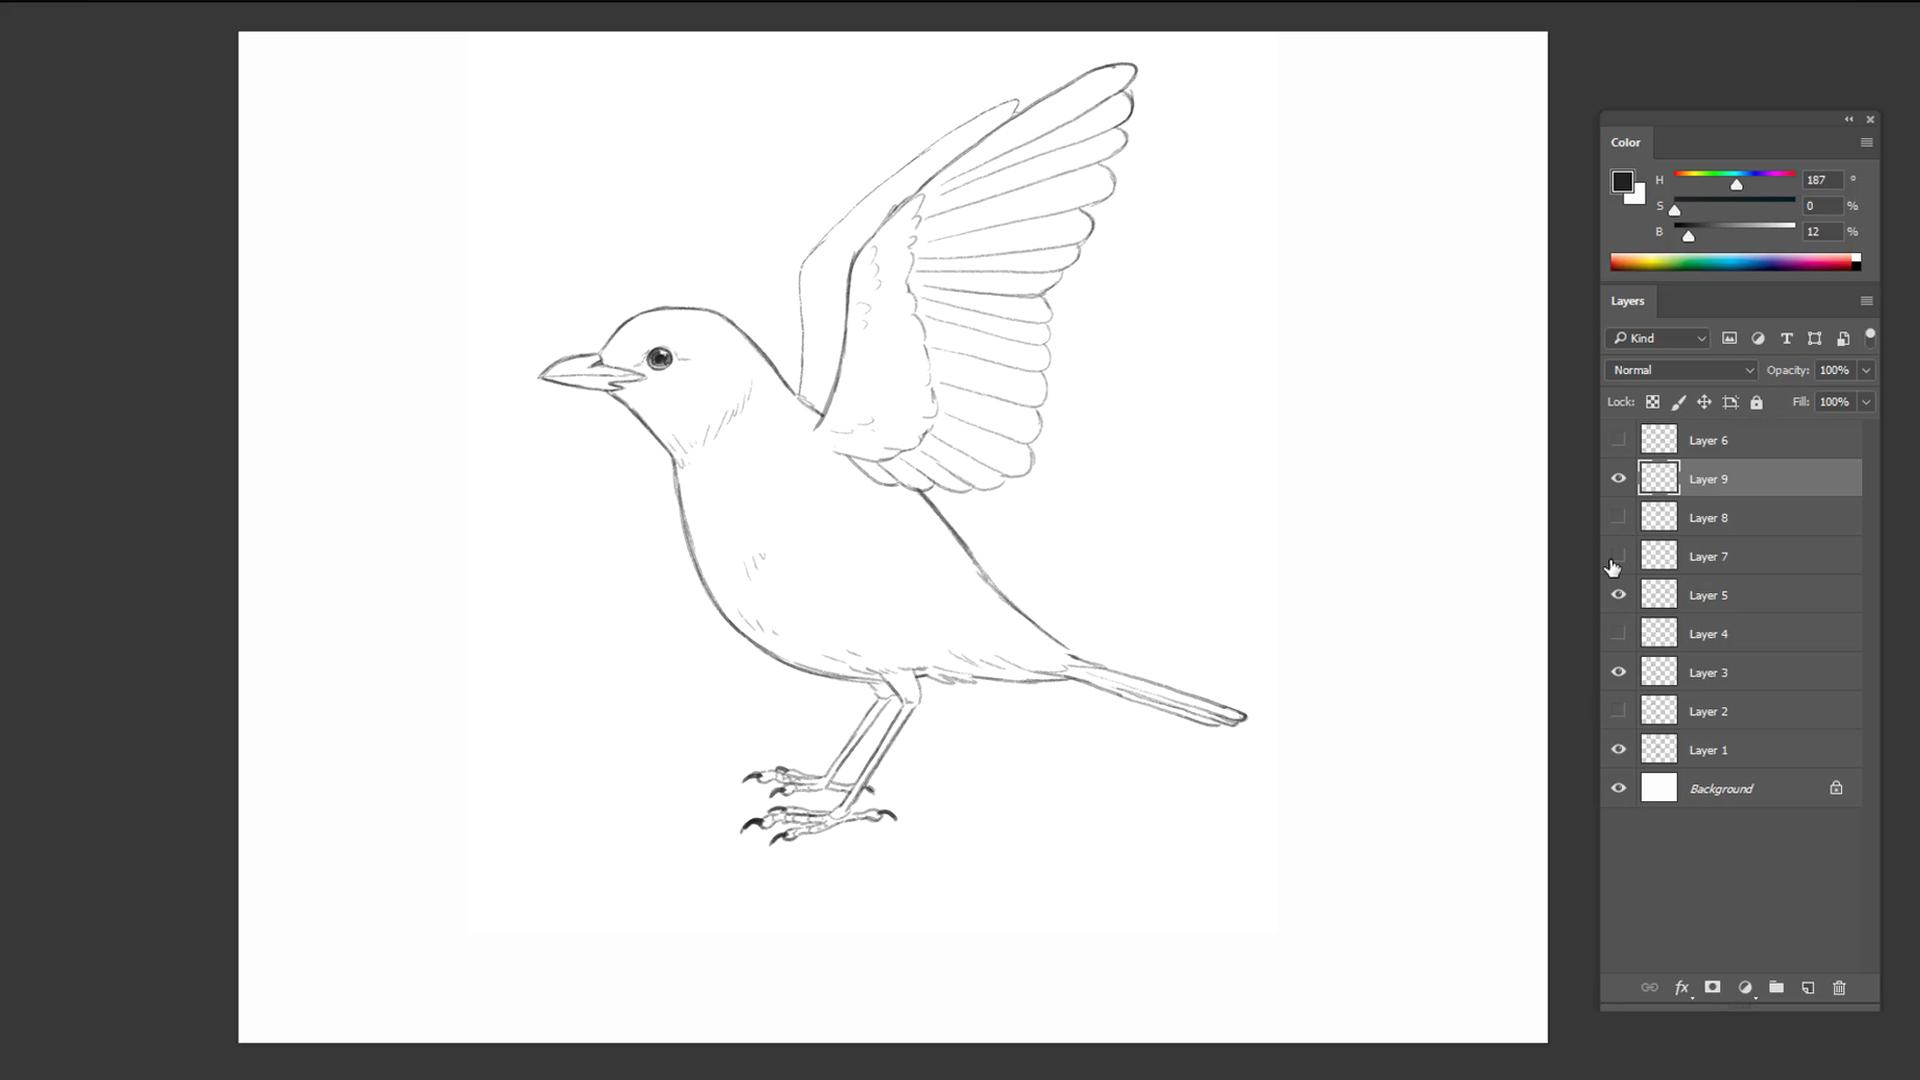 Pencil sketch of a bird about to take flight